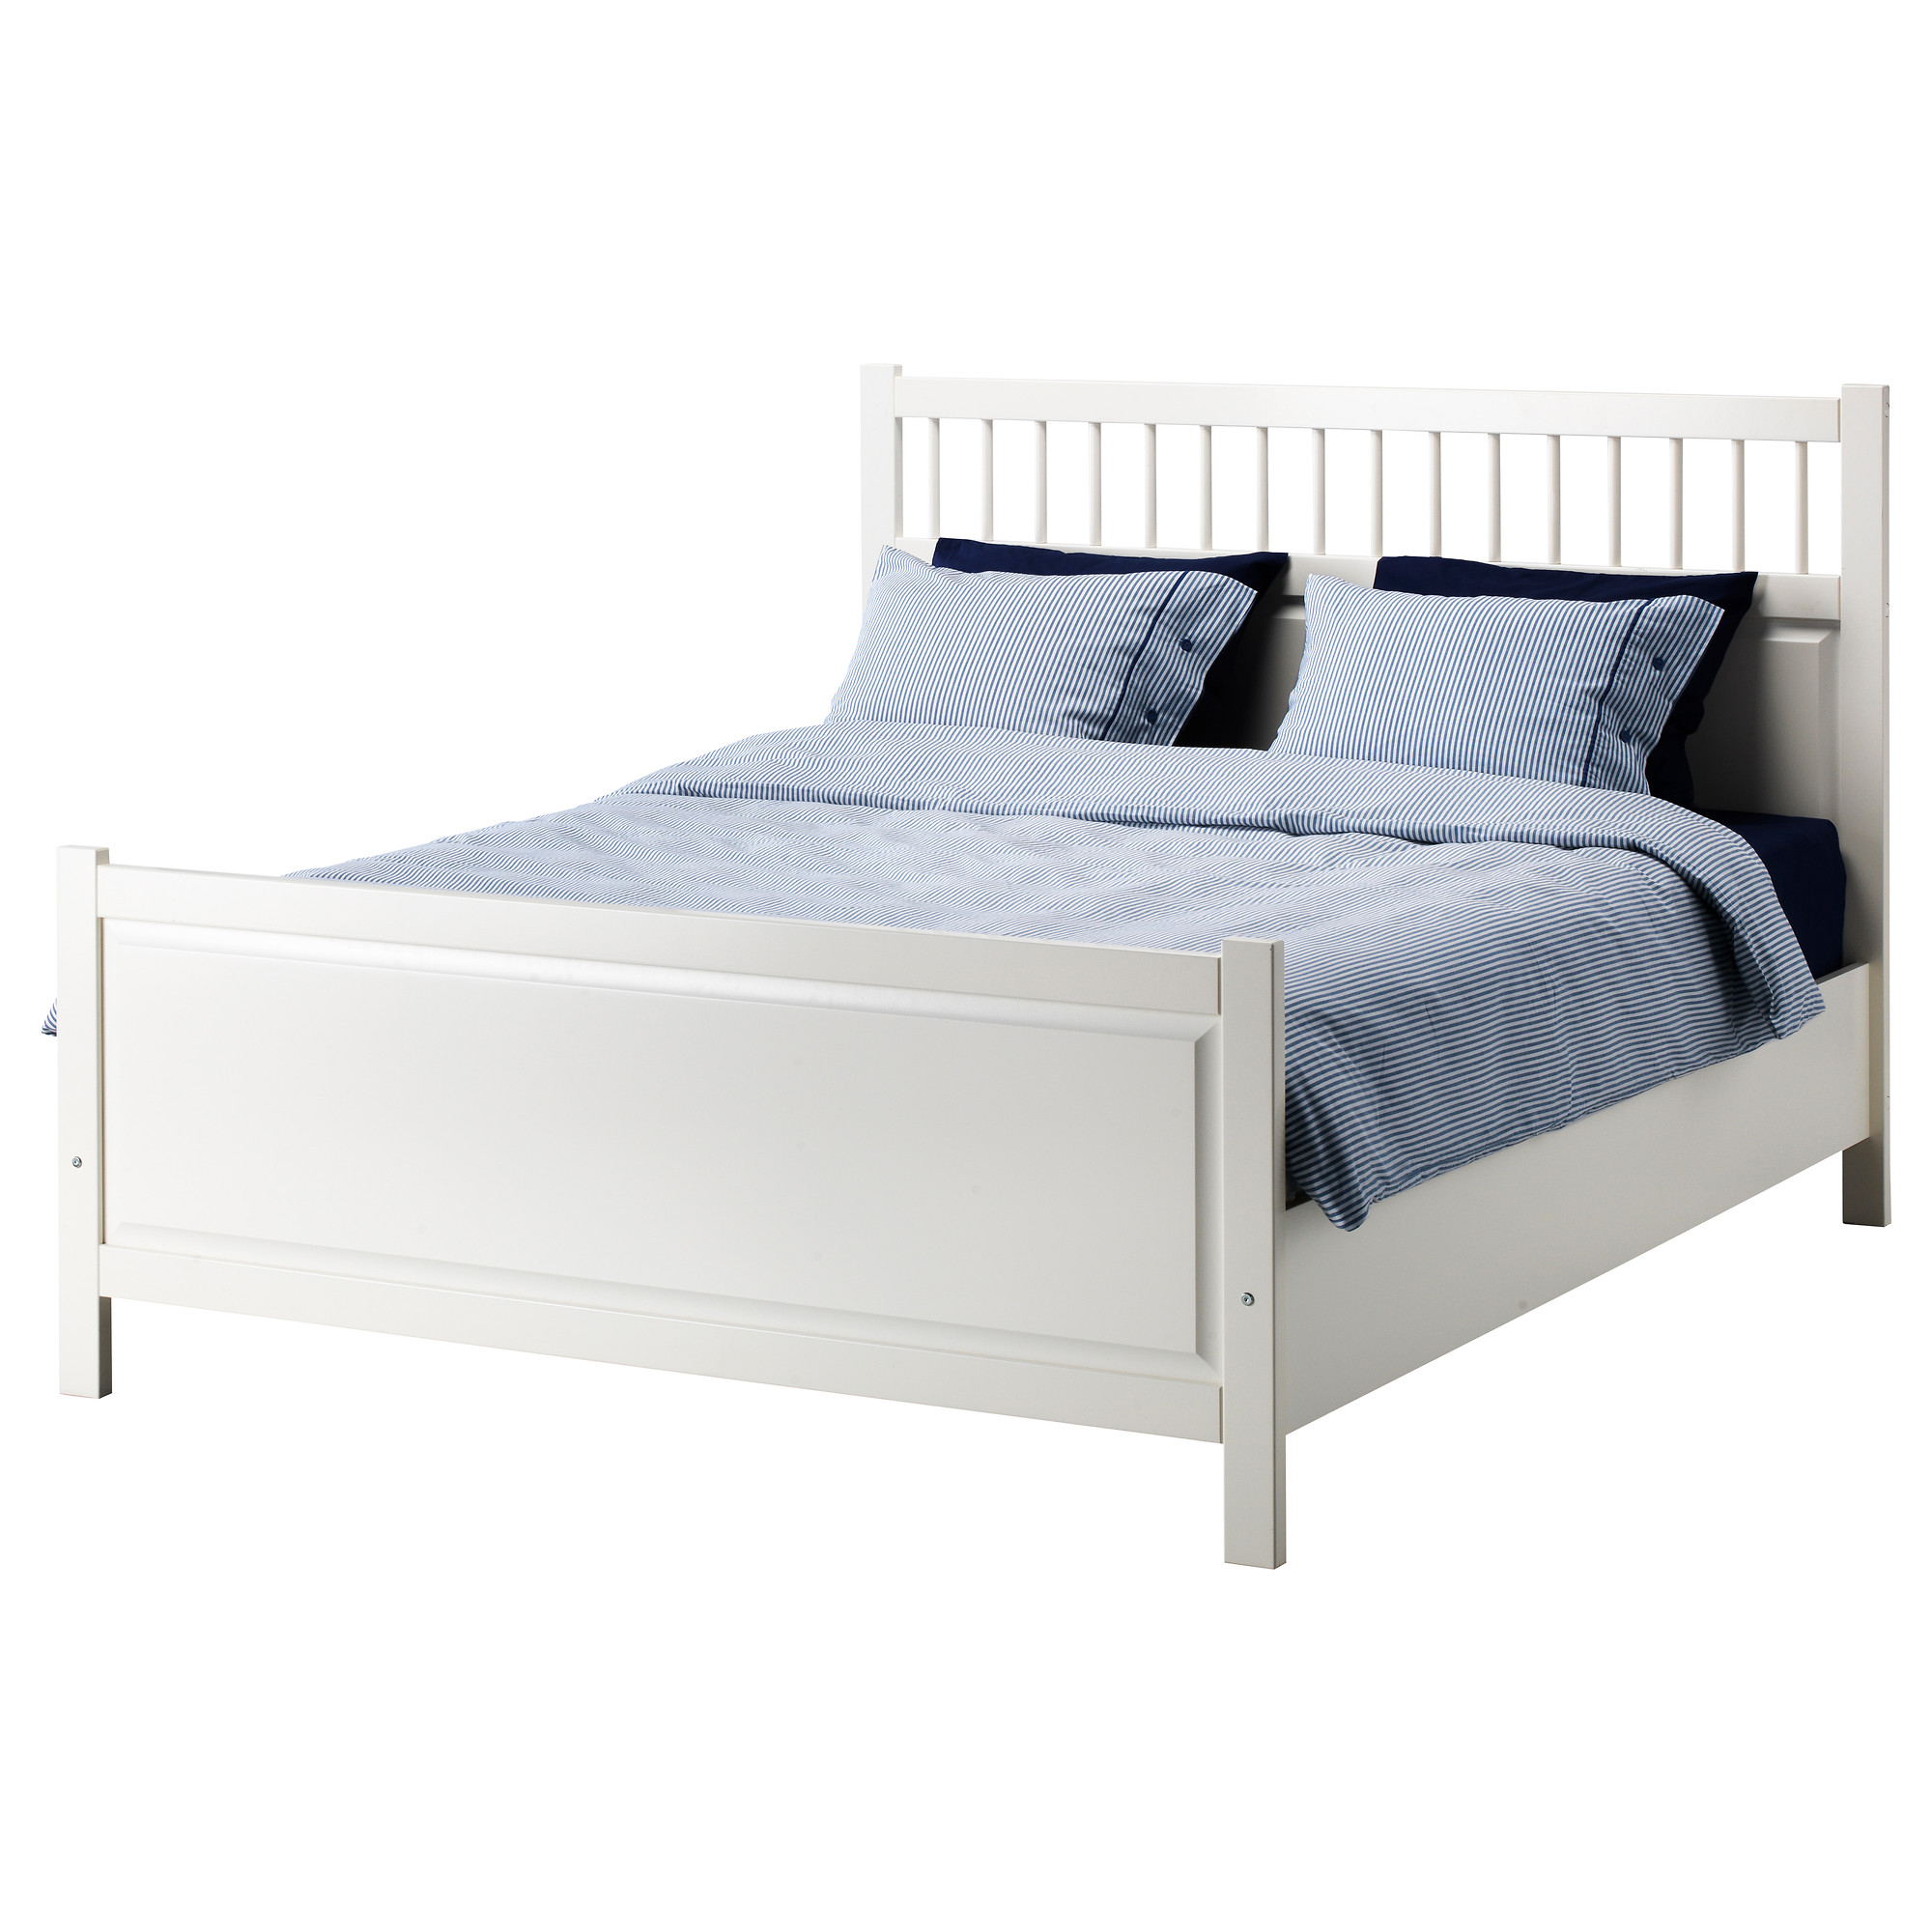 full white beds frames bedroom furniture ikea with blue pillows and cover ikea twin bed